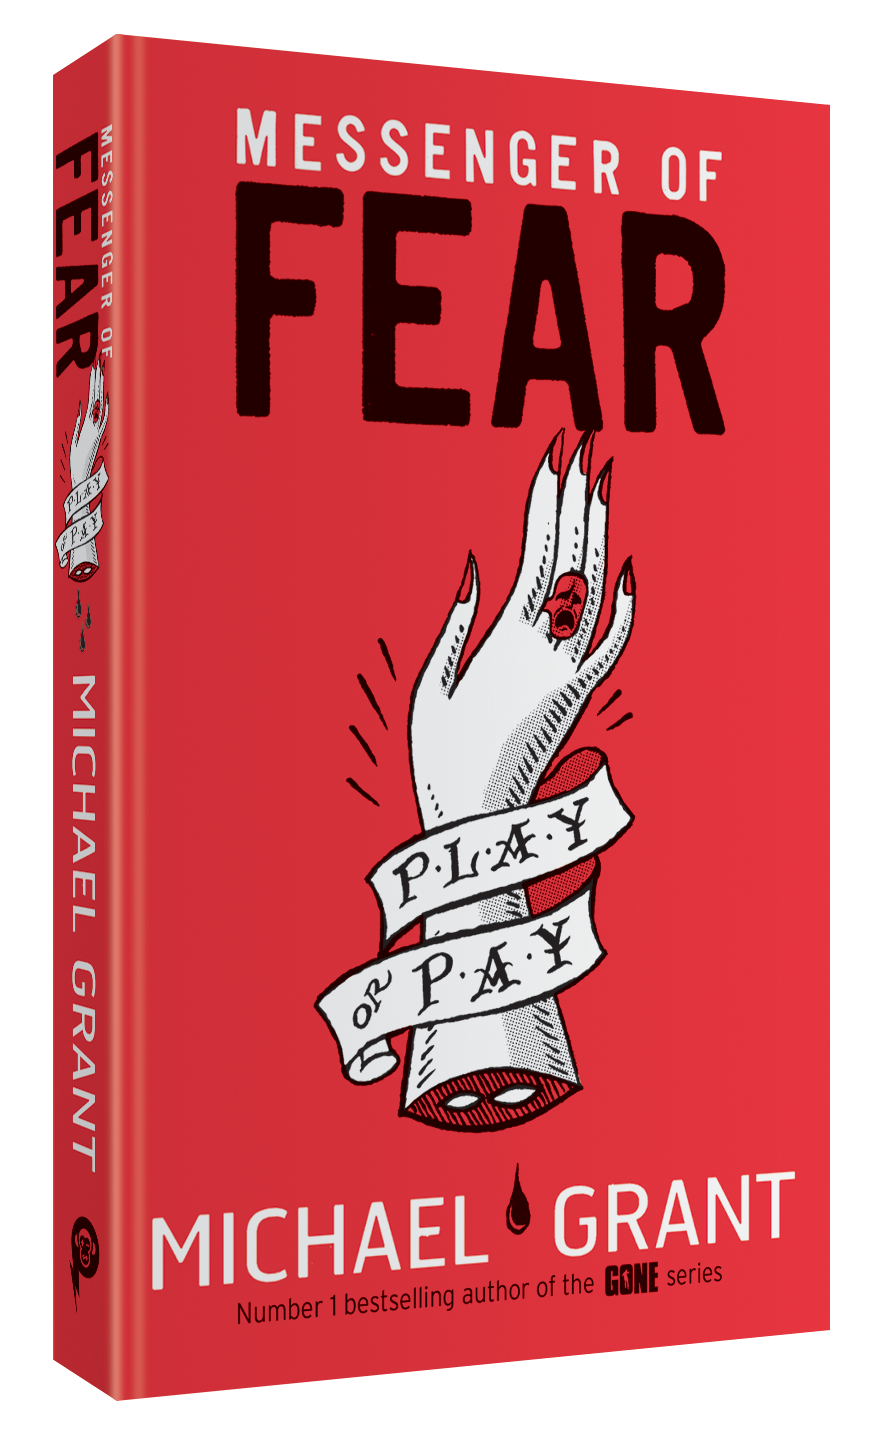 Cook Book Cover Questions : The book addicted girl messenger of fear uk cover reveal